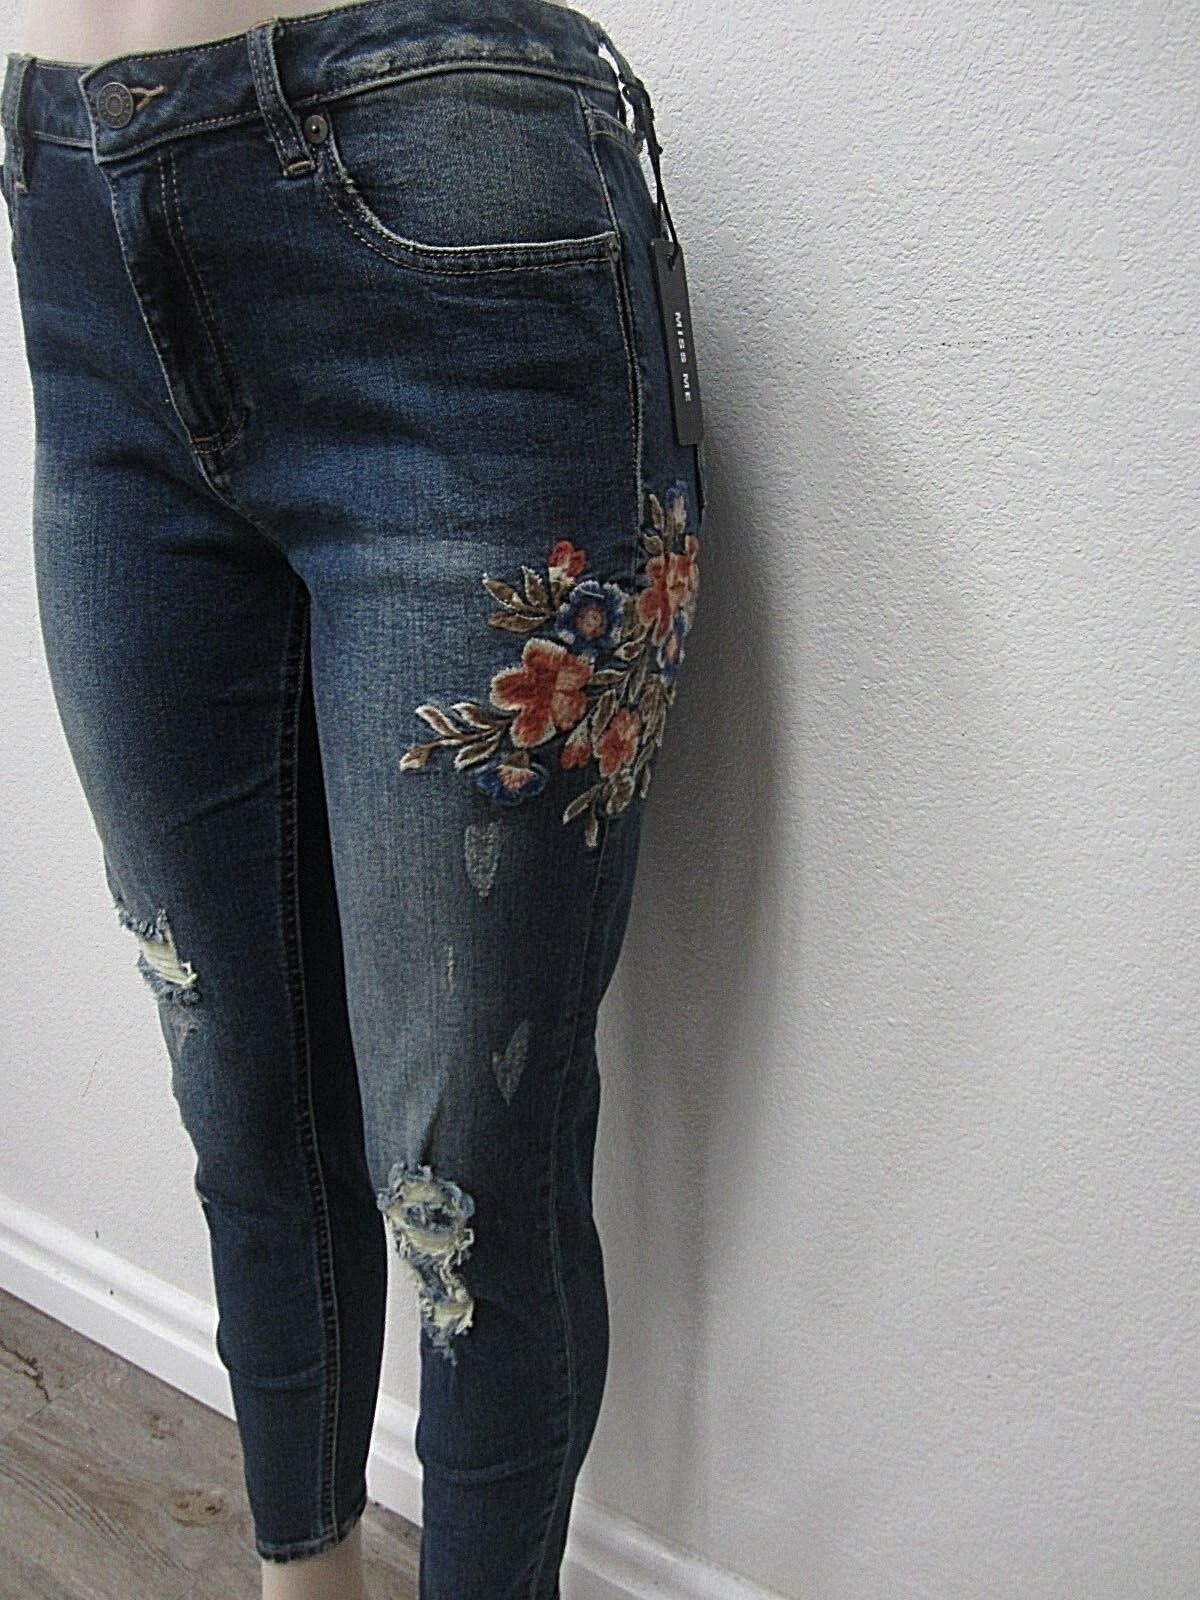 NWT WOMEN'S MISS ME JEANS M2056AK MID RISE ANKLE SKINNY CUT SIZE 31 x 27